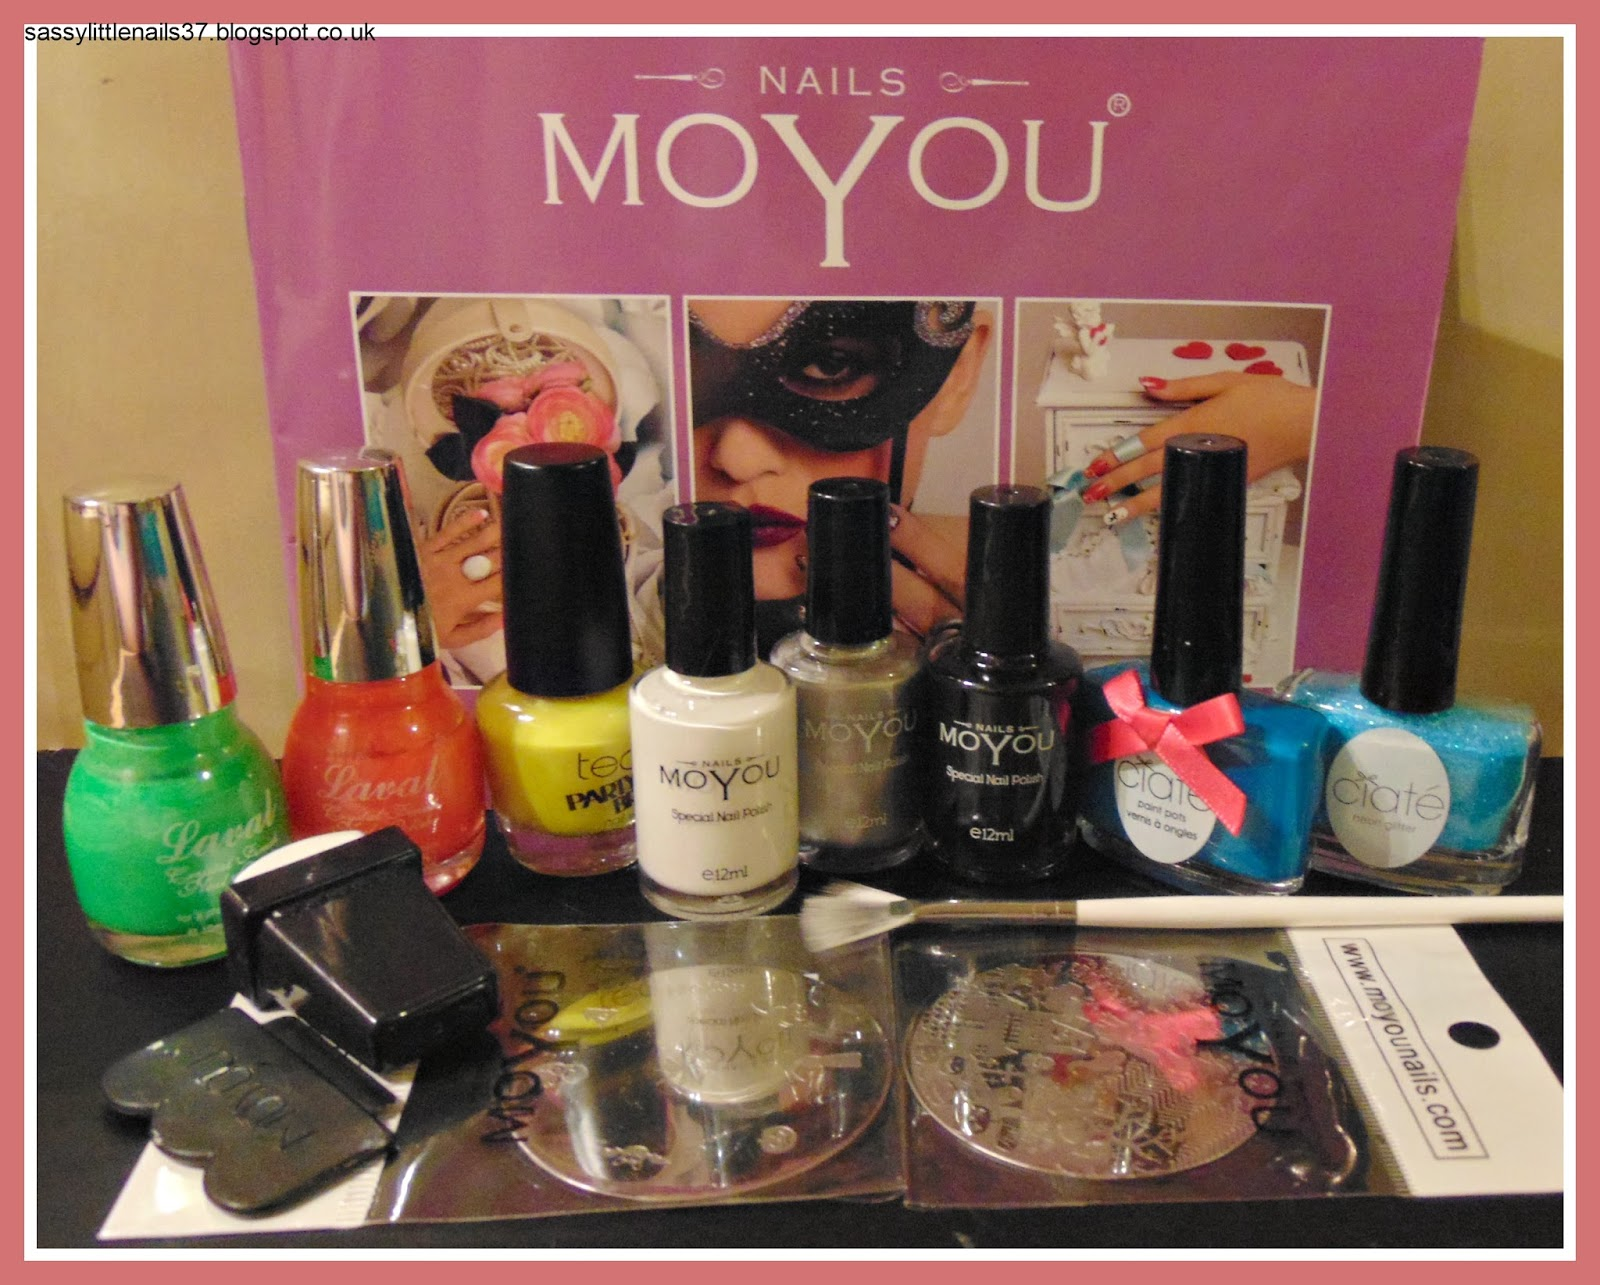 SassyLittleNails: Moyou Nails products review Halloween Nails